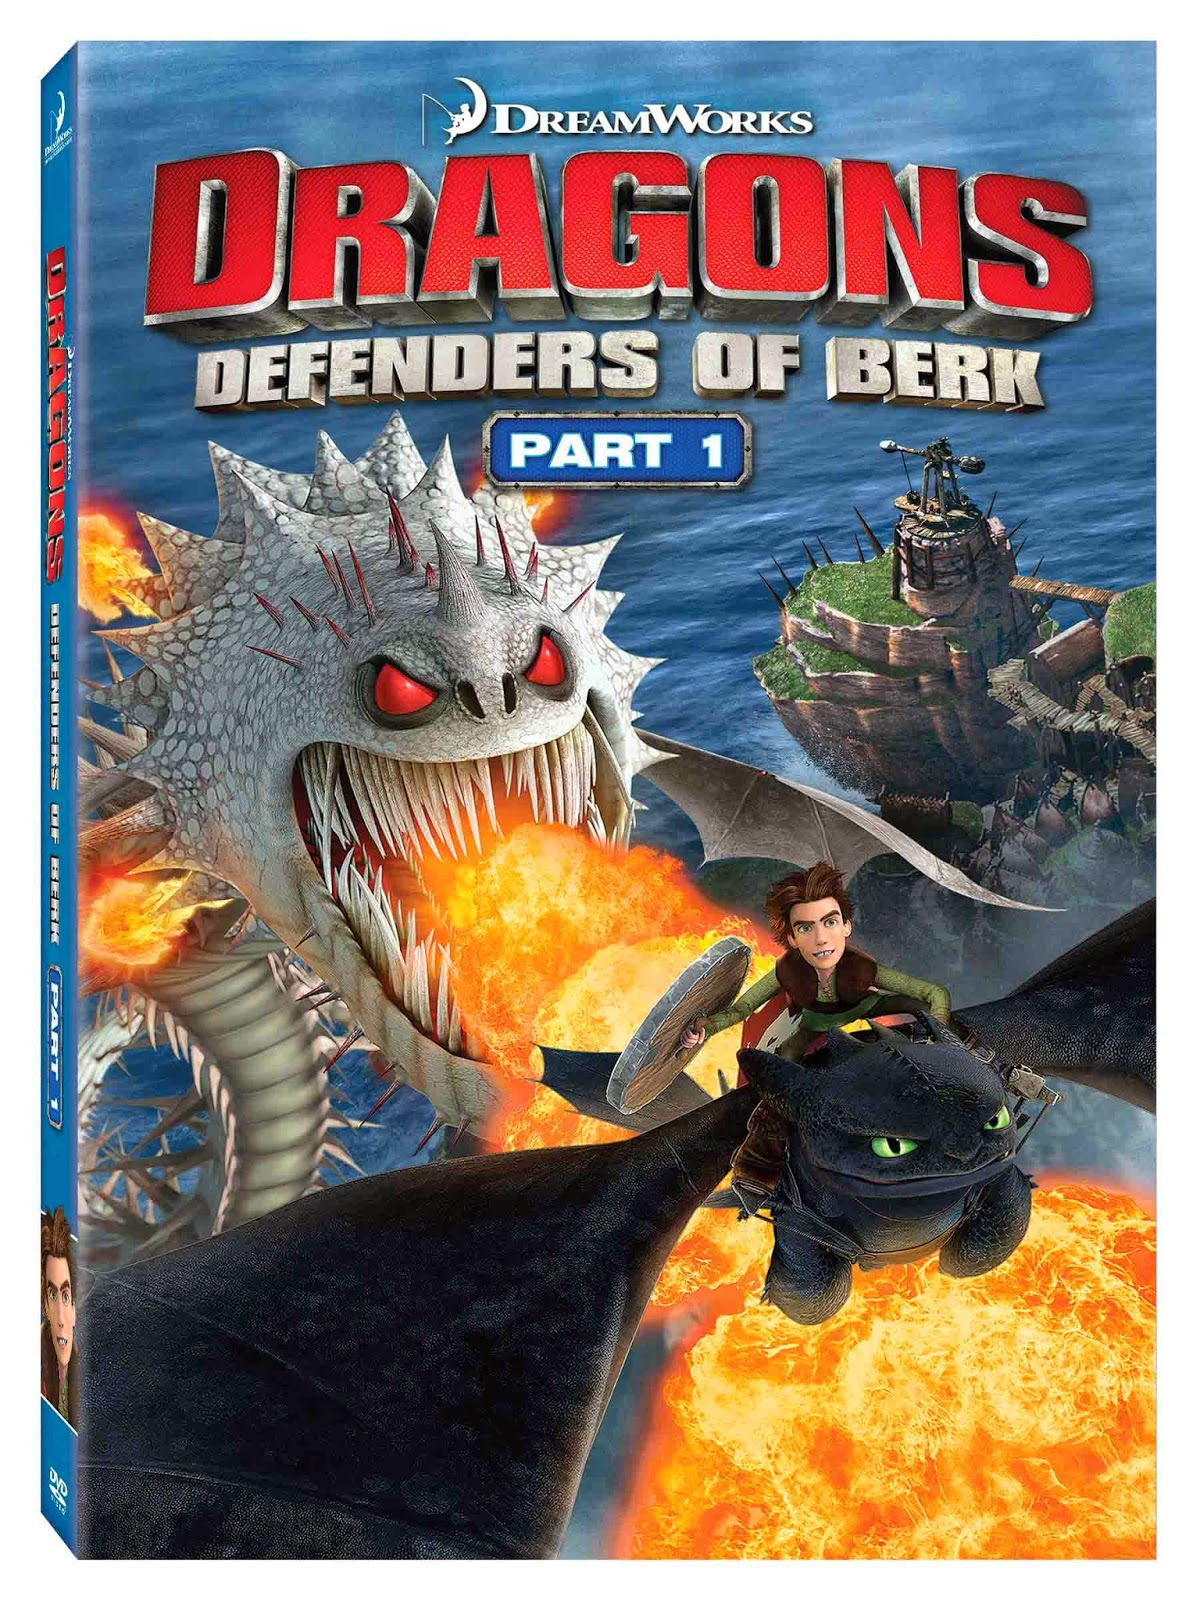 DVD Review -  DreamWorks Dragons: Defenders Of Berk - Part 1